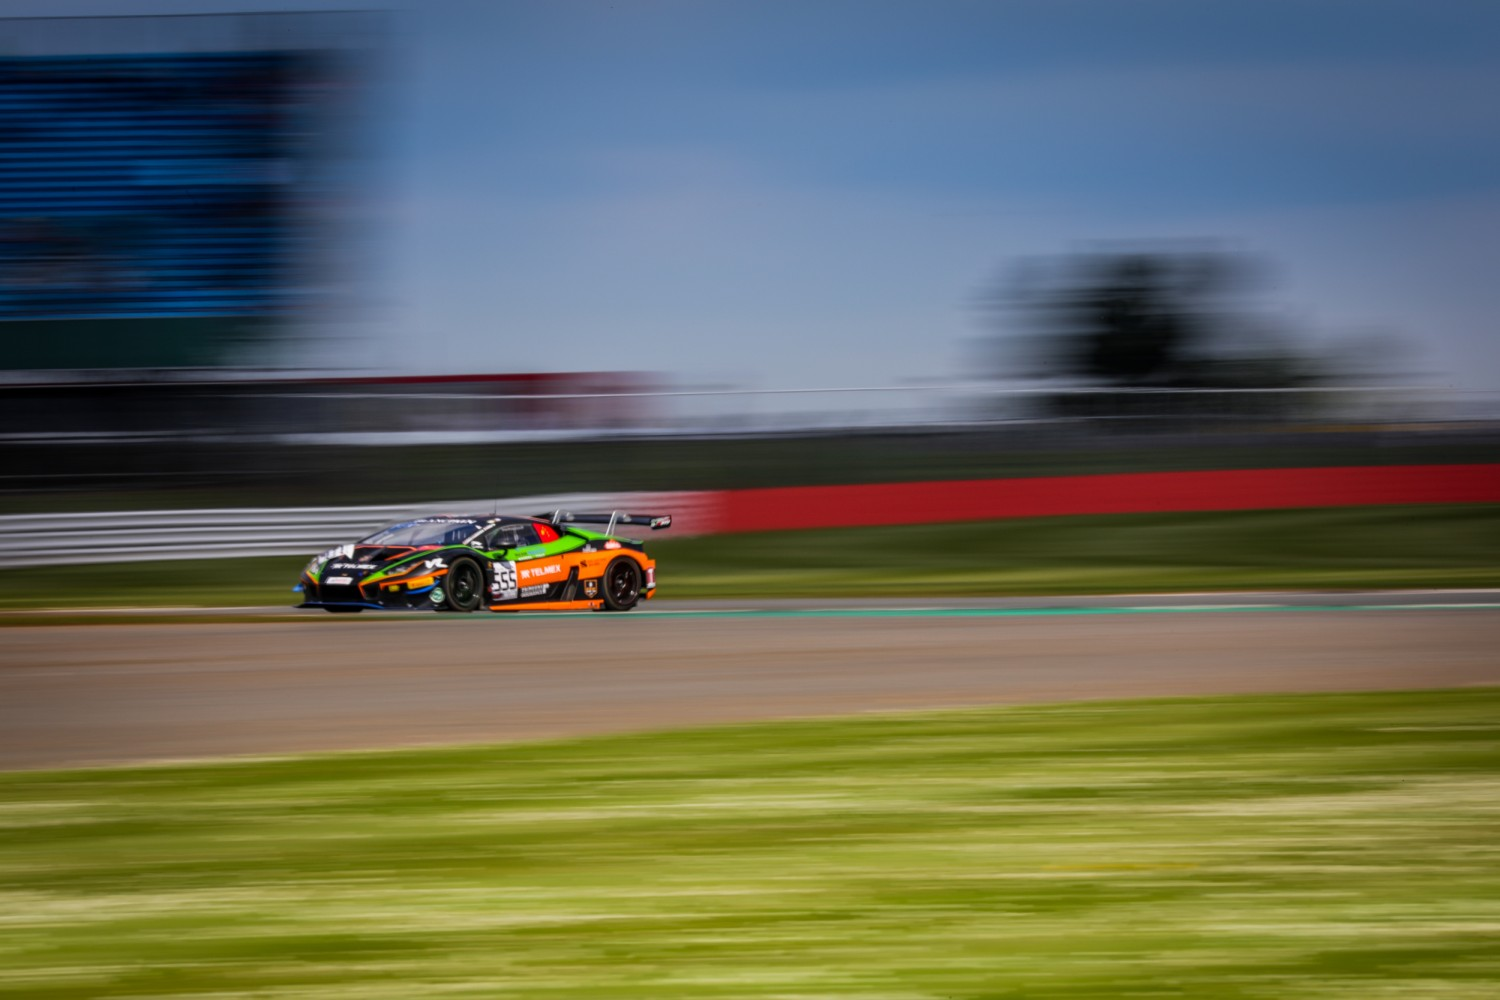 #555 Orange 1 FFF Racing Team CHN Lamborghini Huracan GT3 2019 Diego Menchaca MEX Taylor Proto GBR Michele Beretta ITA Silver Cup, Free Practice  | SRO Motorsports Group